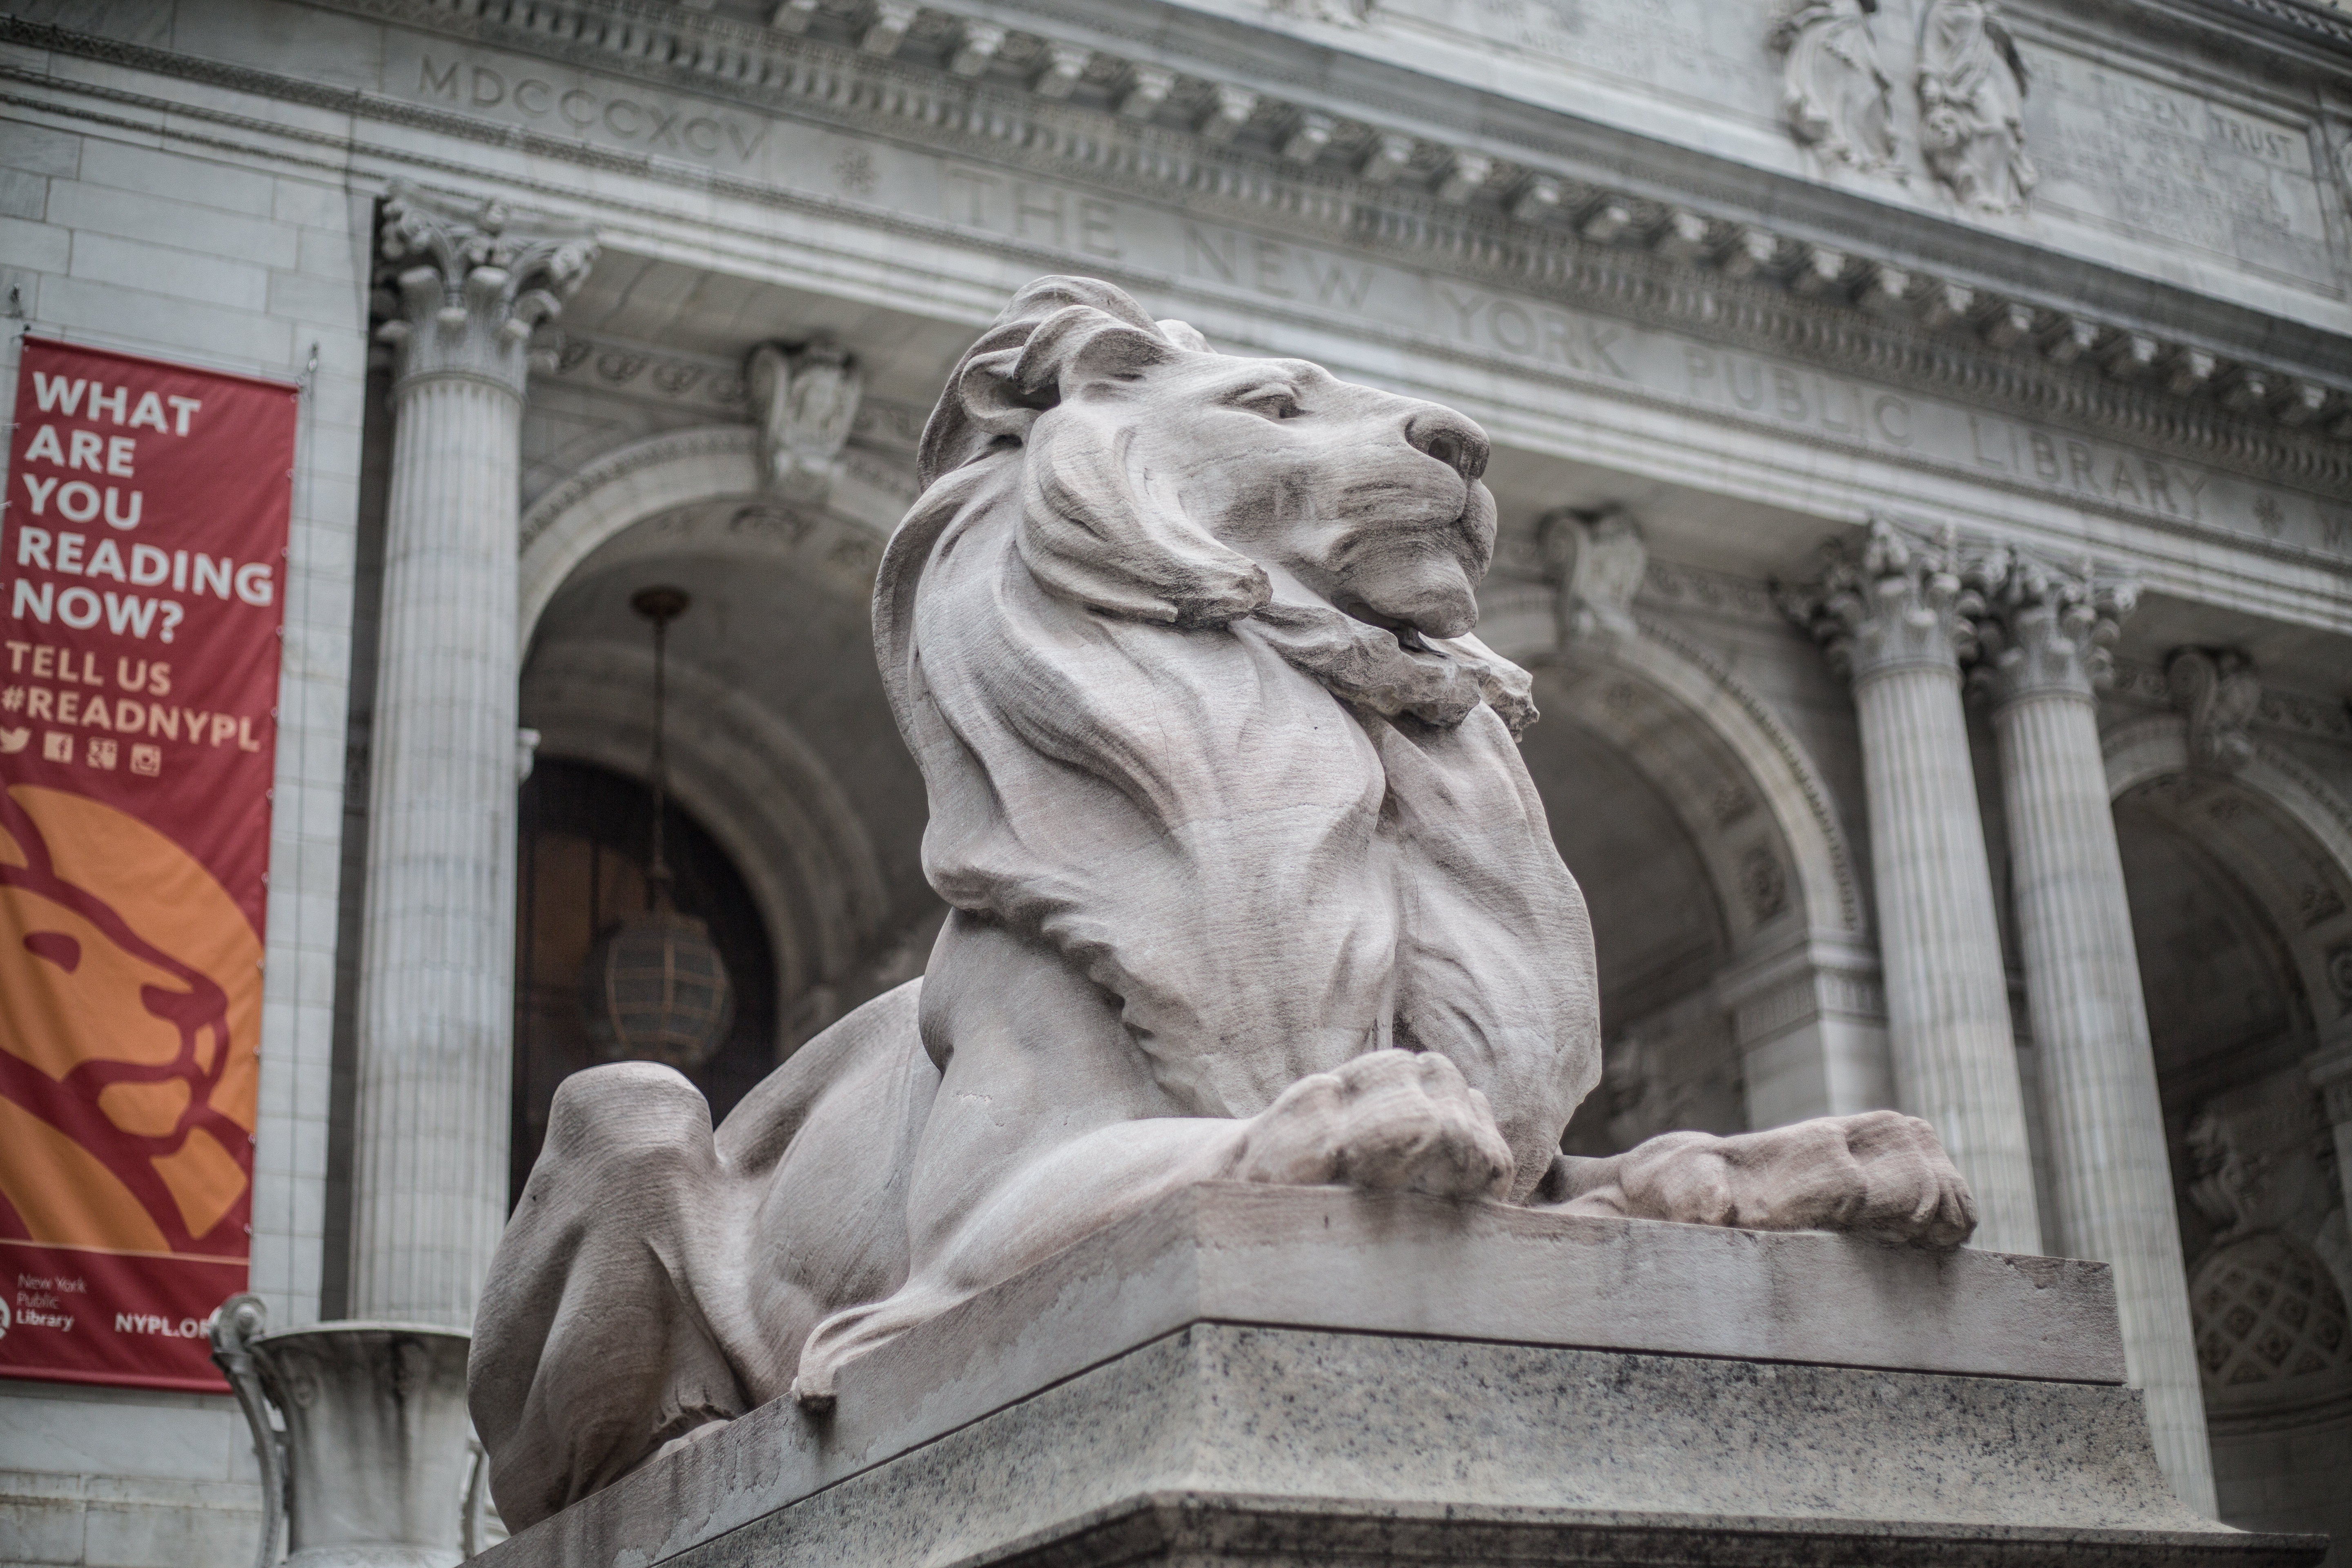 A lion sculpture carved out of stone in front of the New York Public Library building on Fifth Avenue and 42nd Street in Midtown, Manhattan.